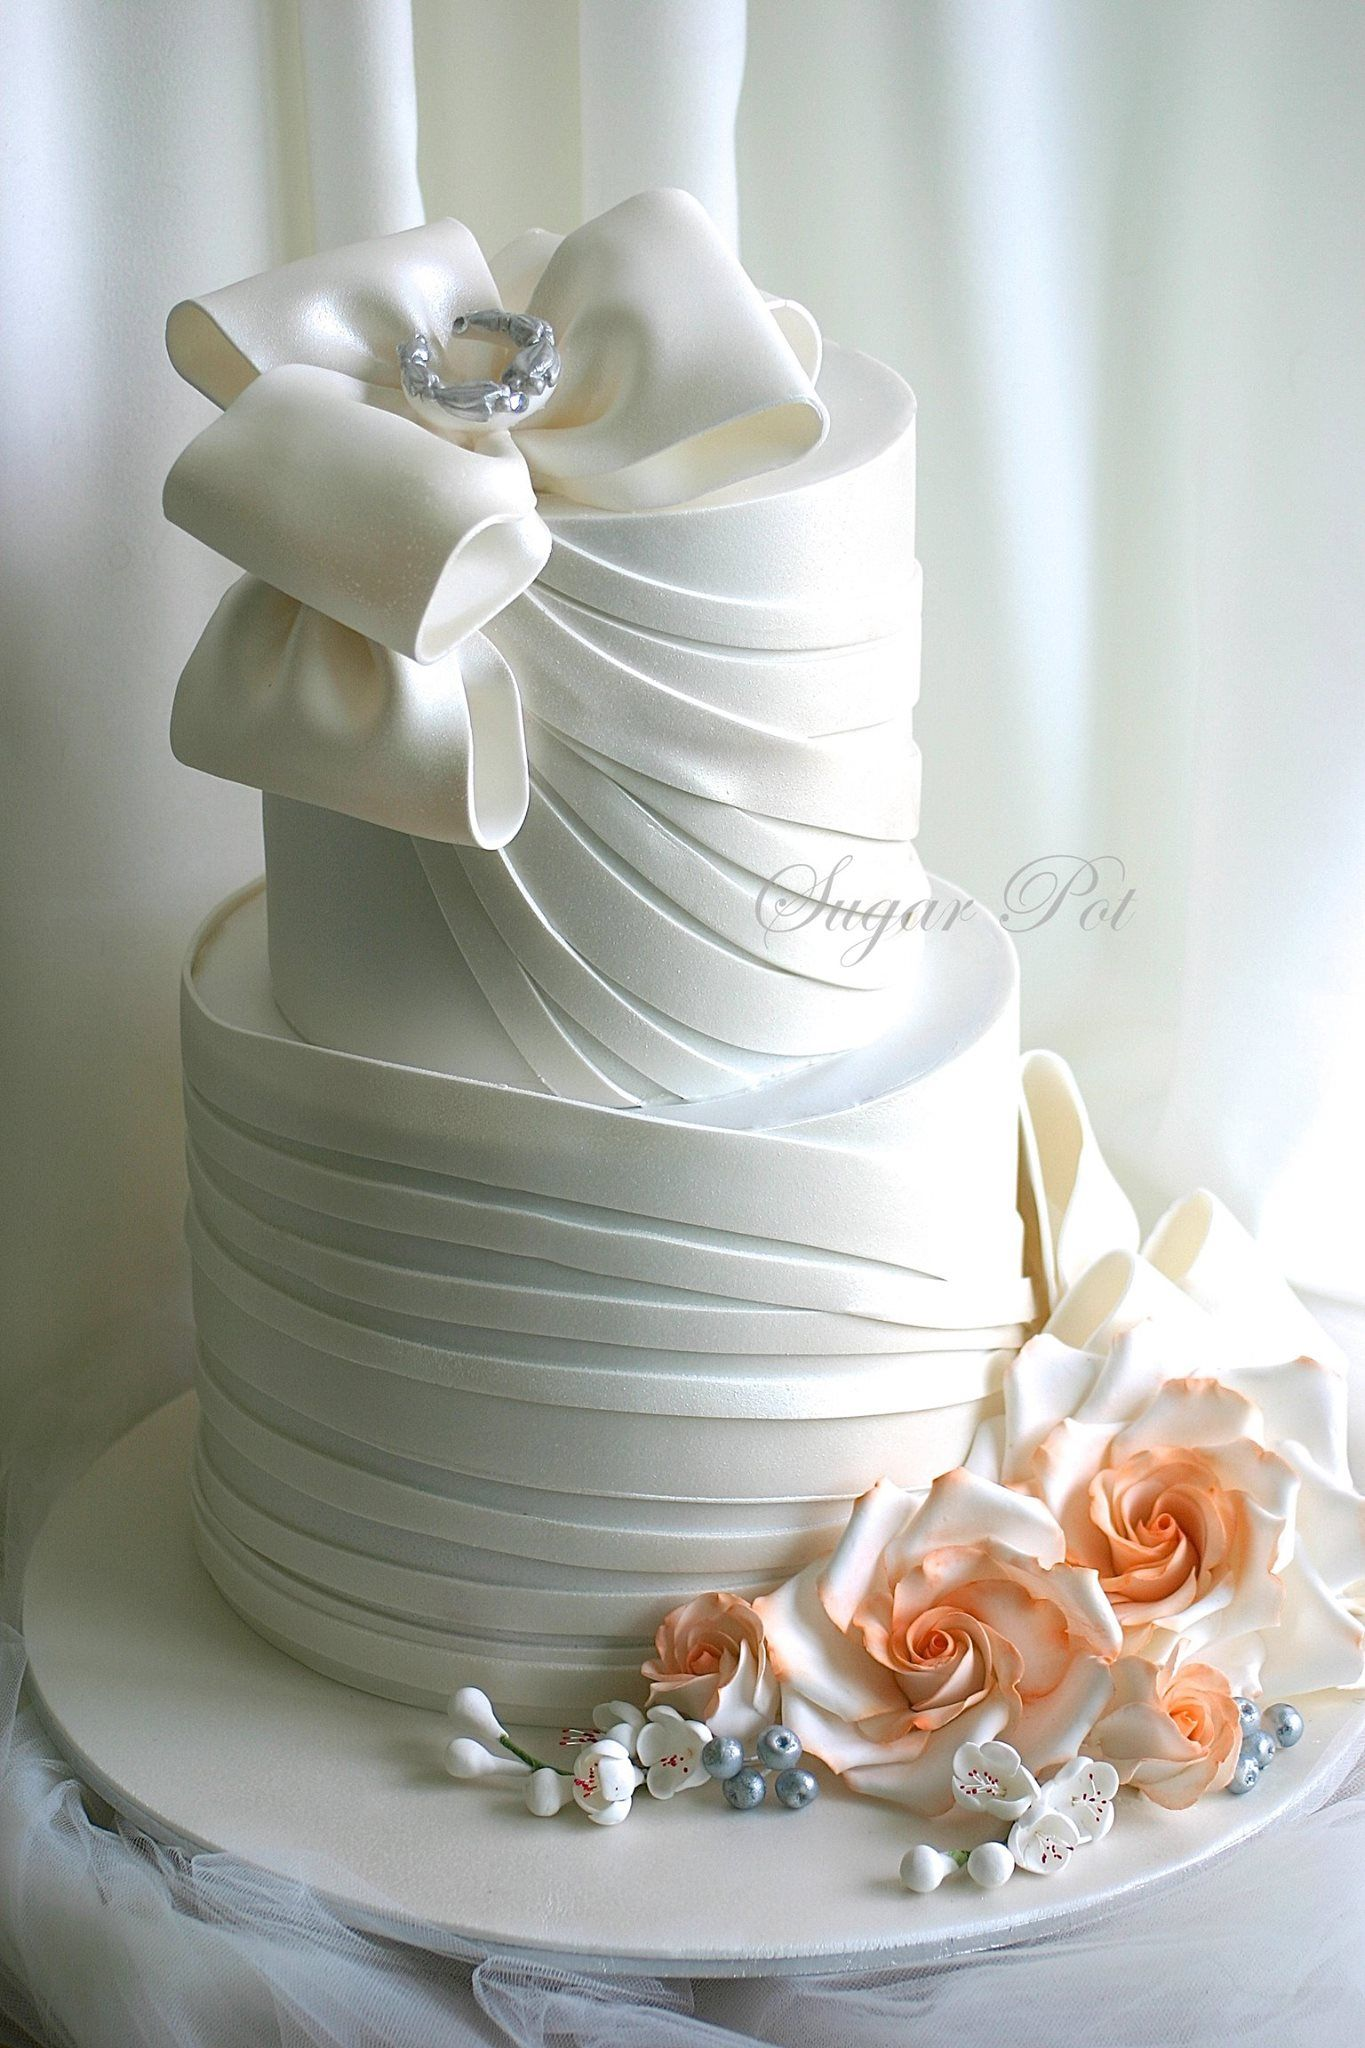 Pin by Brielle Kennington on Cakes | Pinterest | Wedding cake, Cake ...